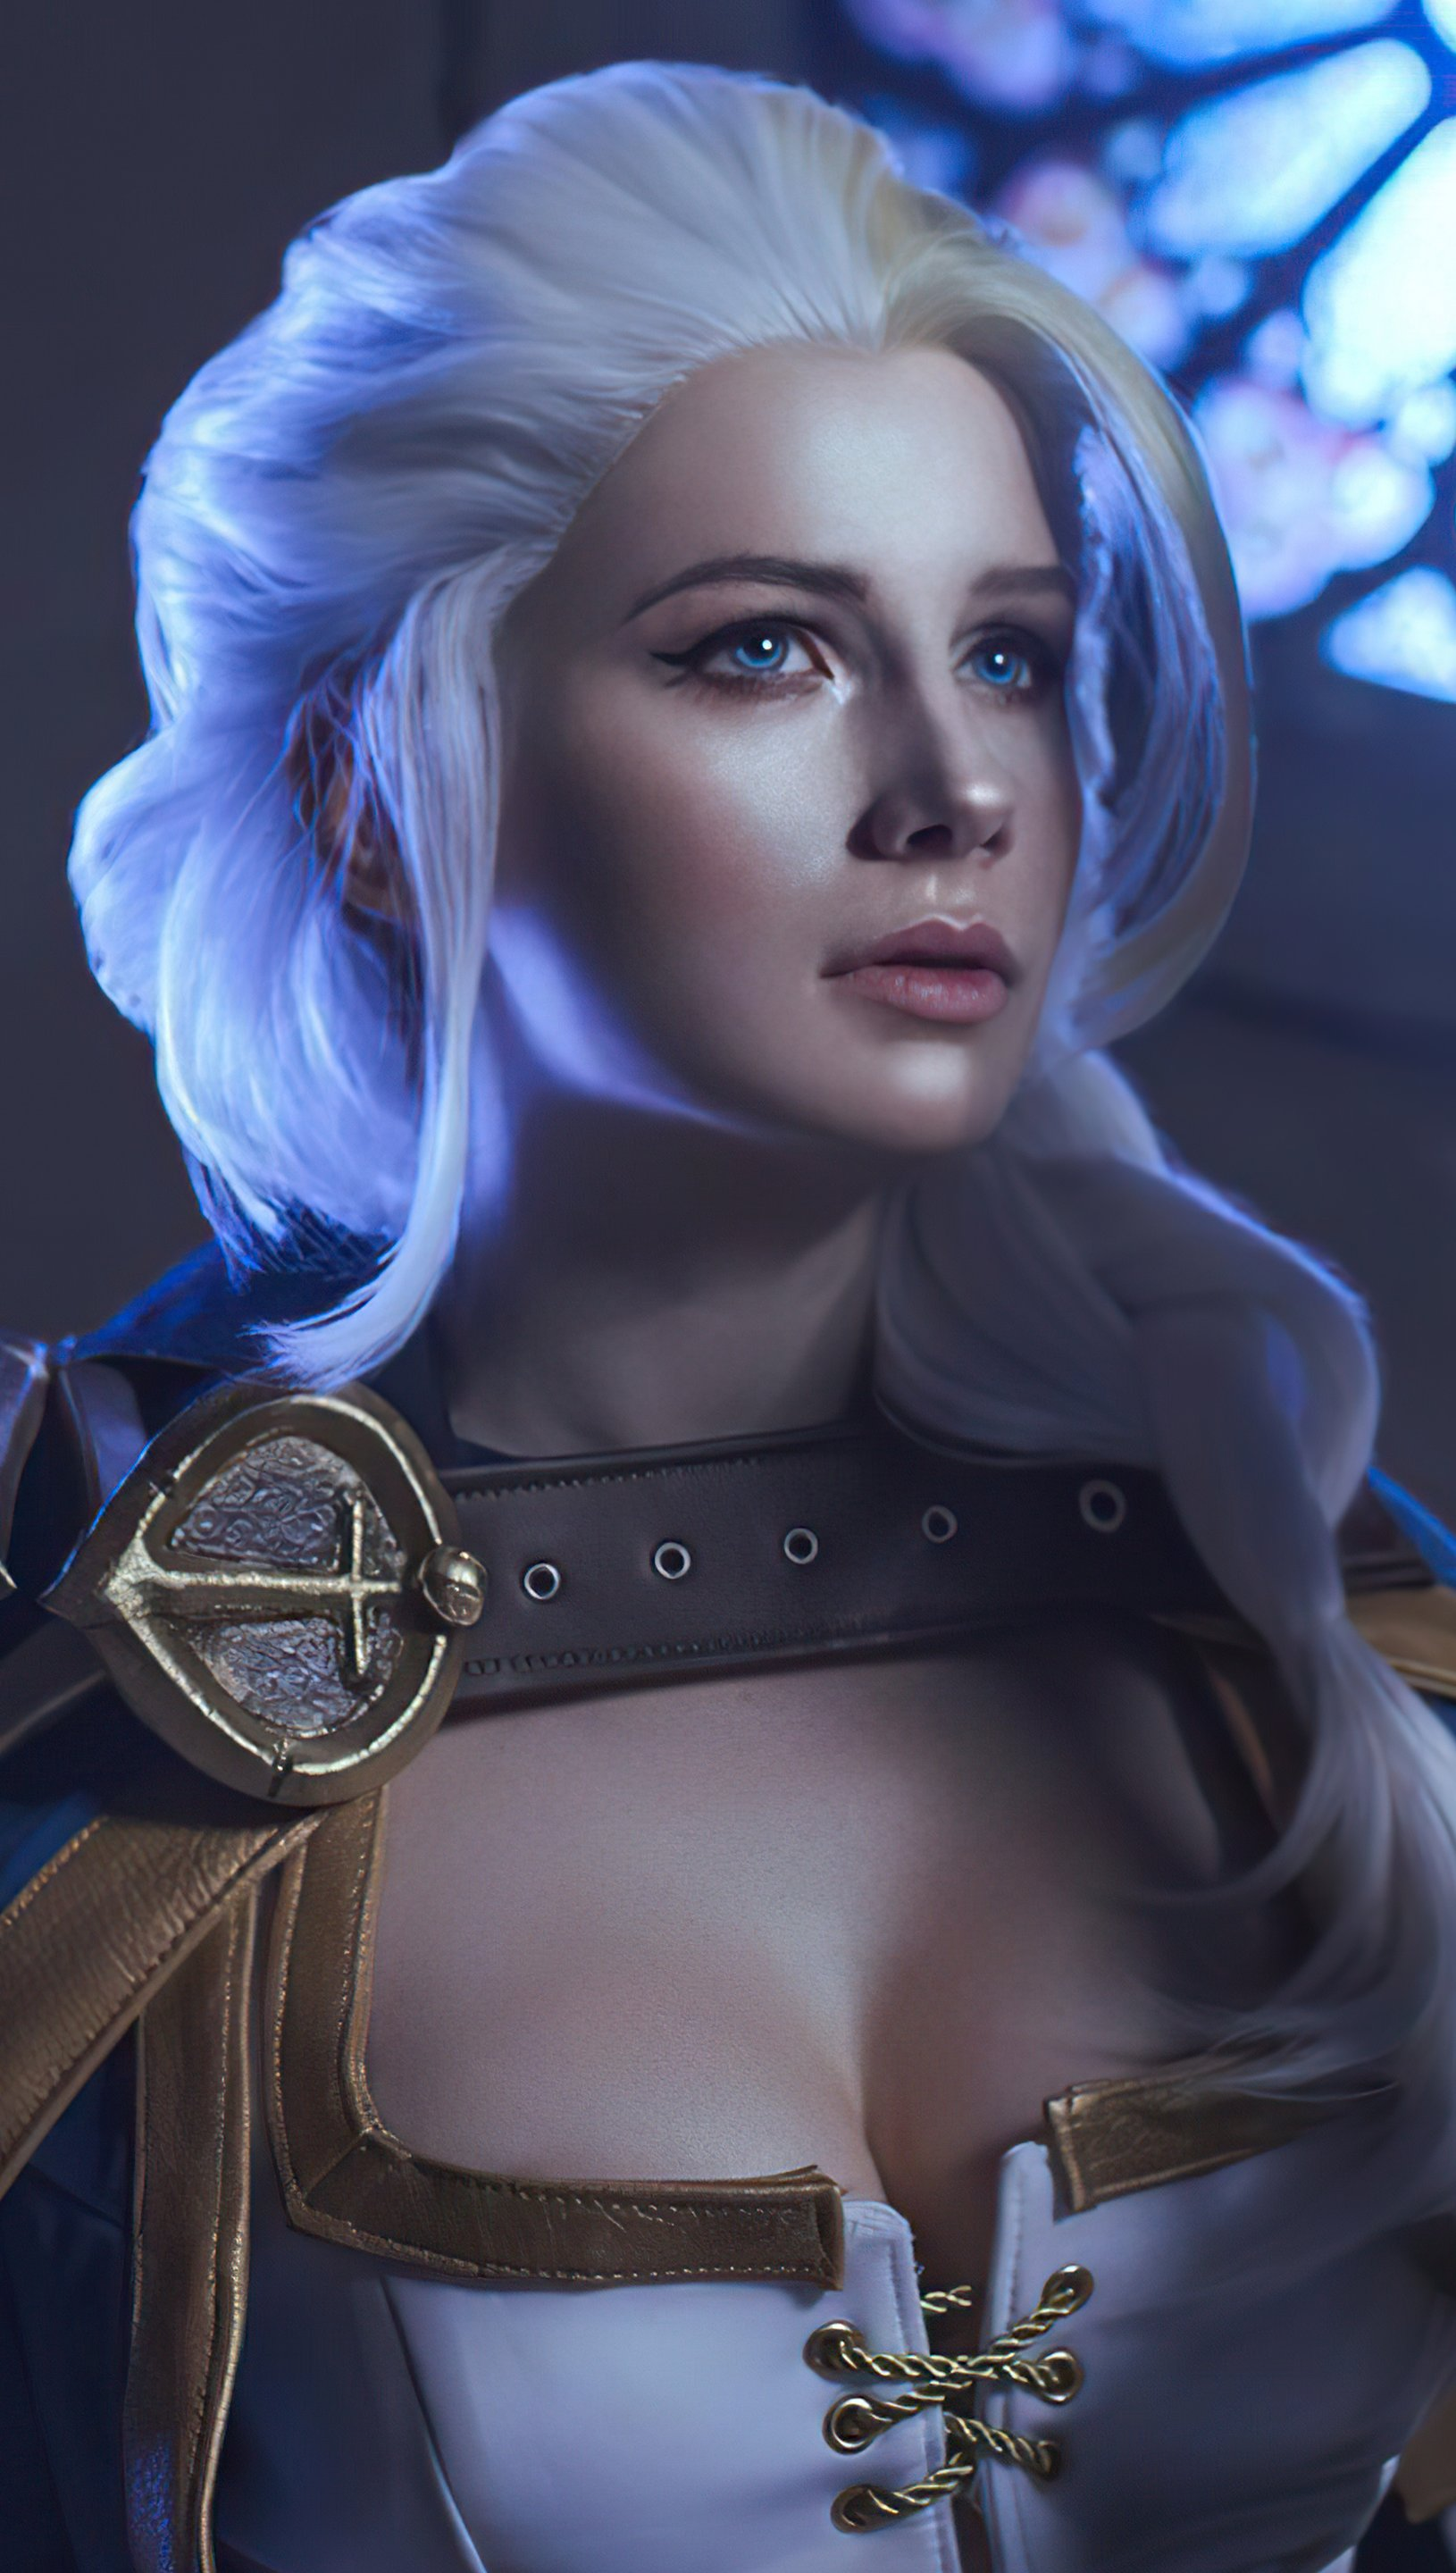 Wallpaper Jaina Proudmoore from The world of warcraft Vertical